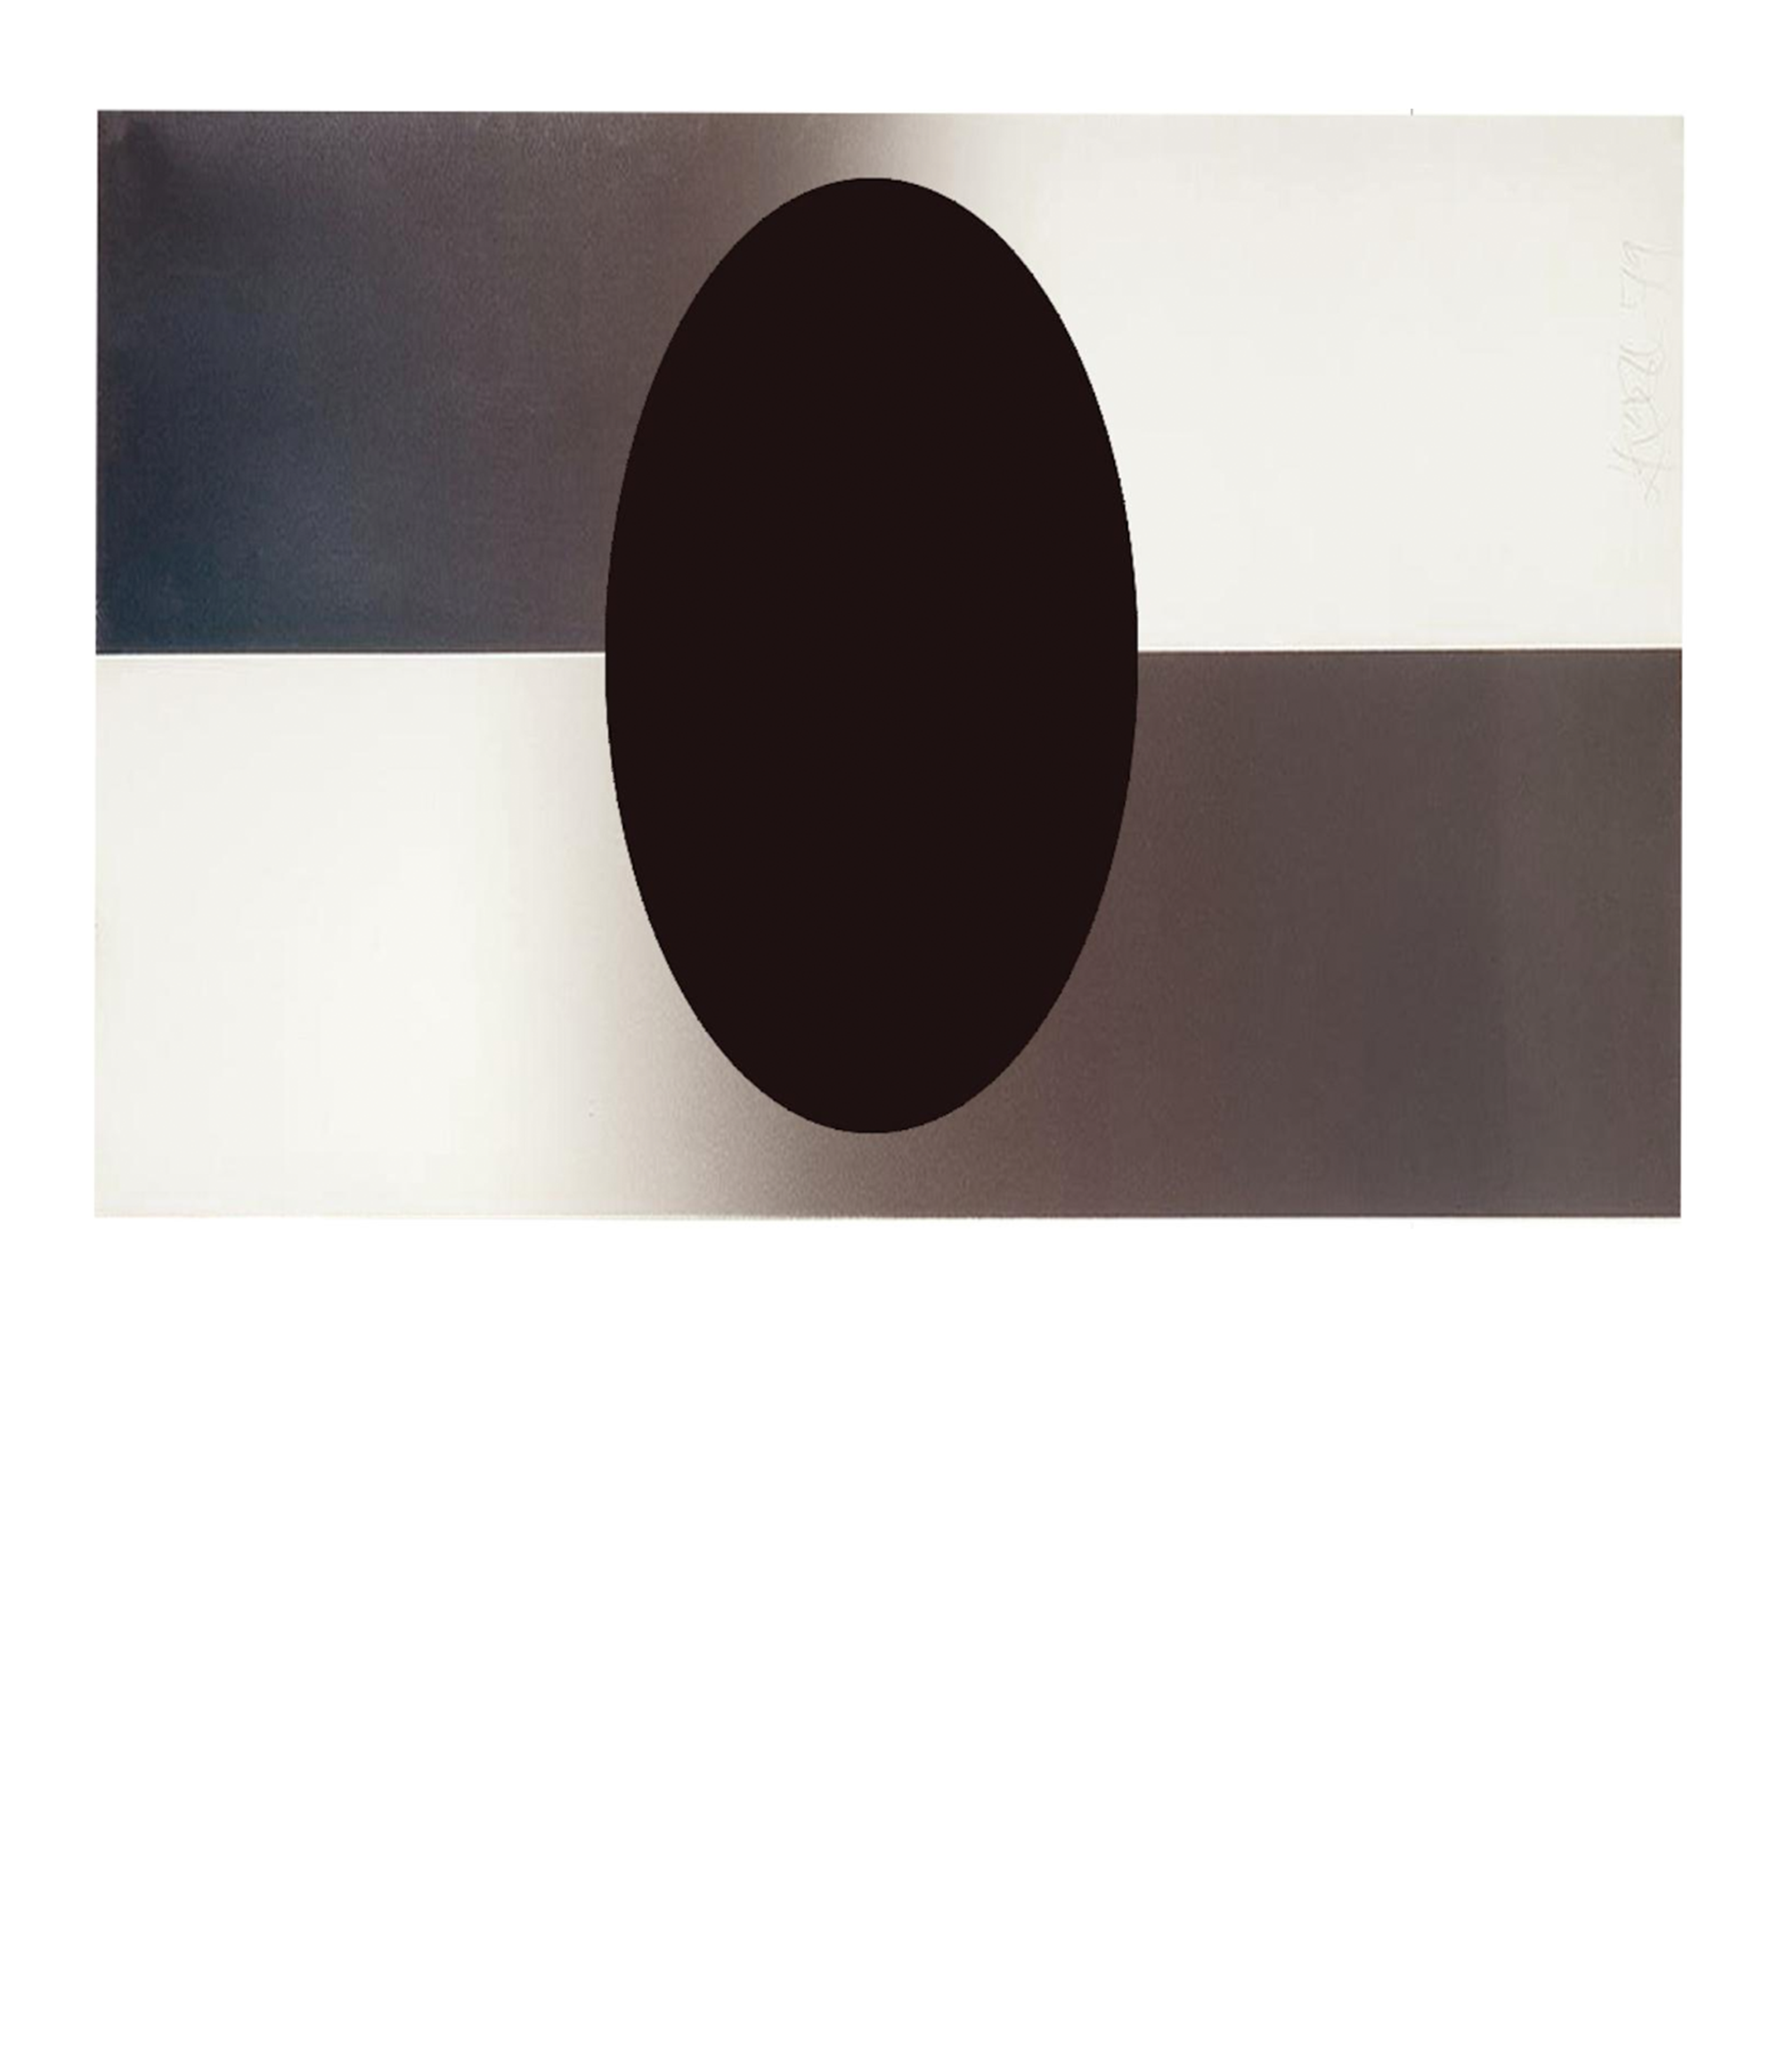 Untitled (Horizontal Fade Ellipse), 1984